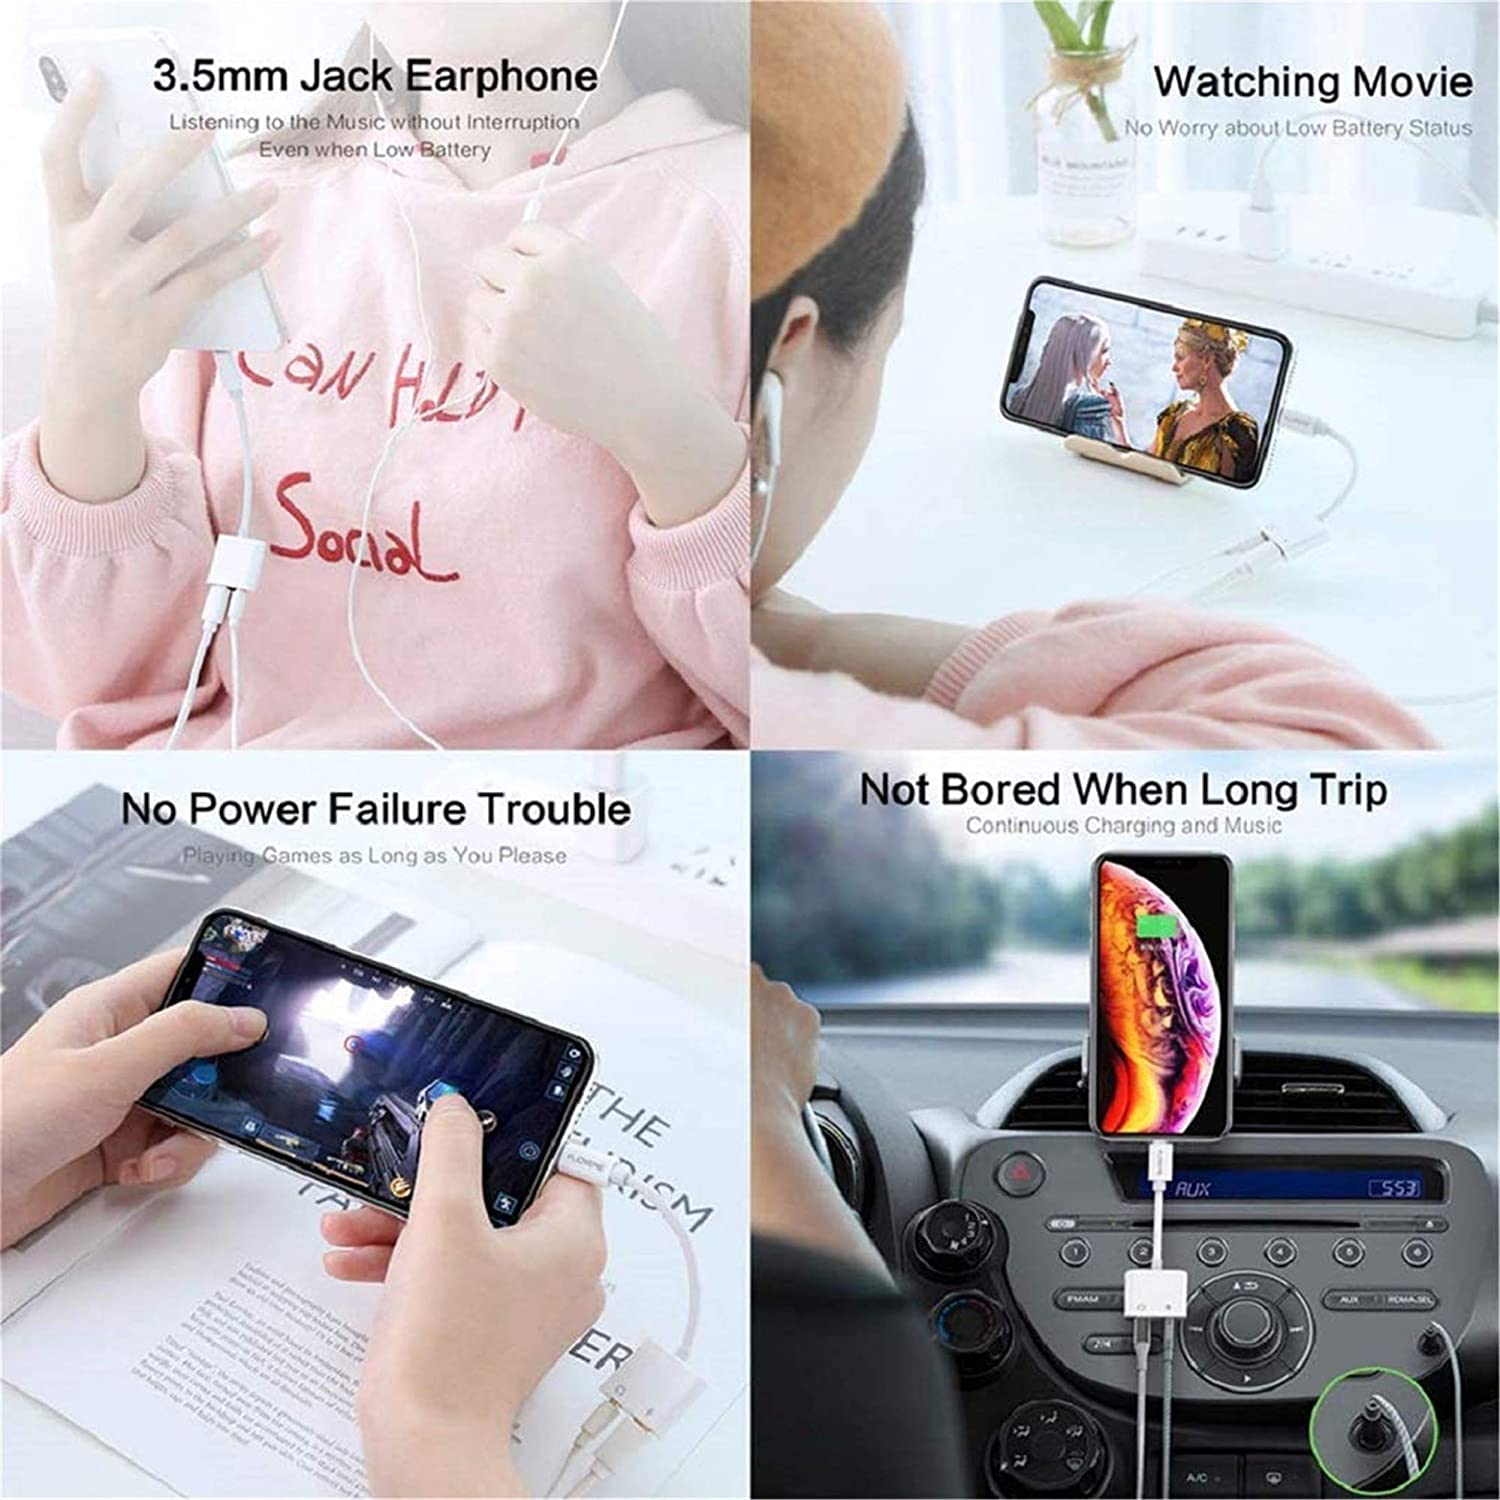 Headphone Adapter for iPhone 11 Adapter to 3.5mm Jack Aux Audio Adapter Compatible with iPhone 7//7P//8//8P//X//XR//XS 2 in 1 Function Earphone Adapter Headset Cable Convertor Support All iOS